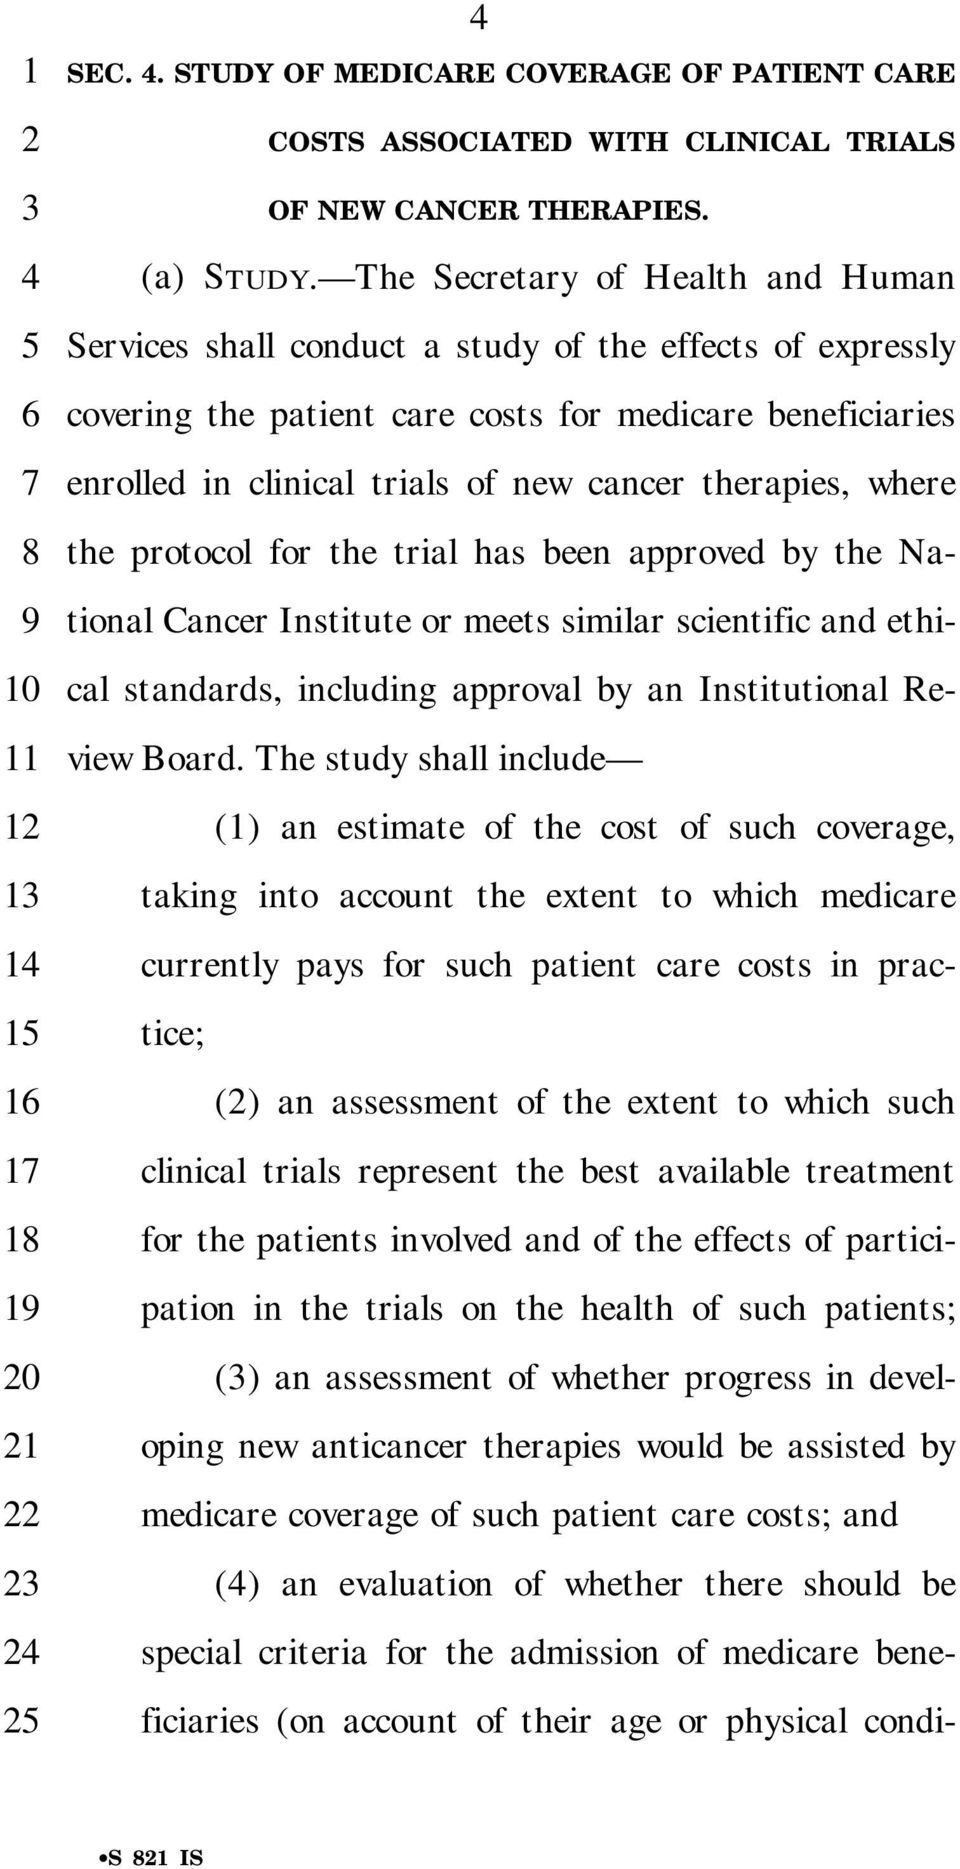 therapies, where the protocol for the trial has been approved by the National Cancer Institute or meets similar scientific and ethical standards, including approval by an Institutional Review Board.